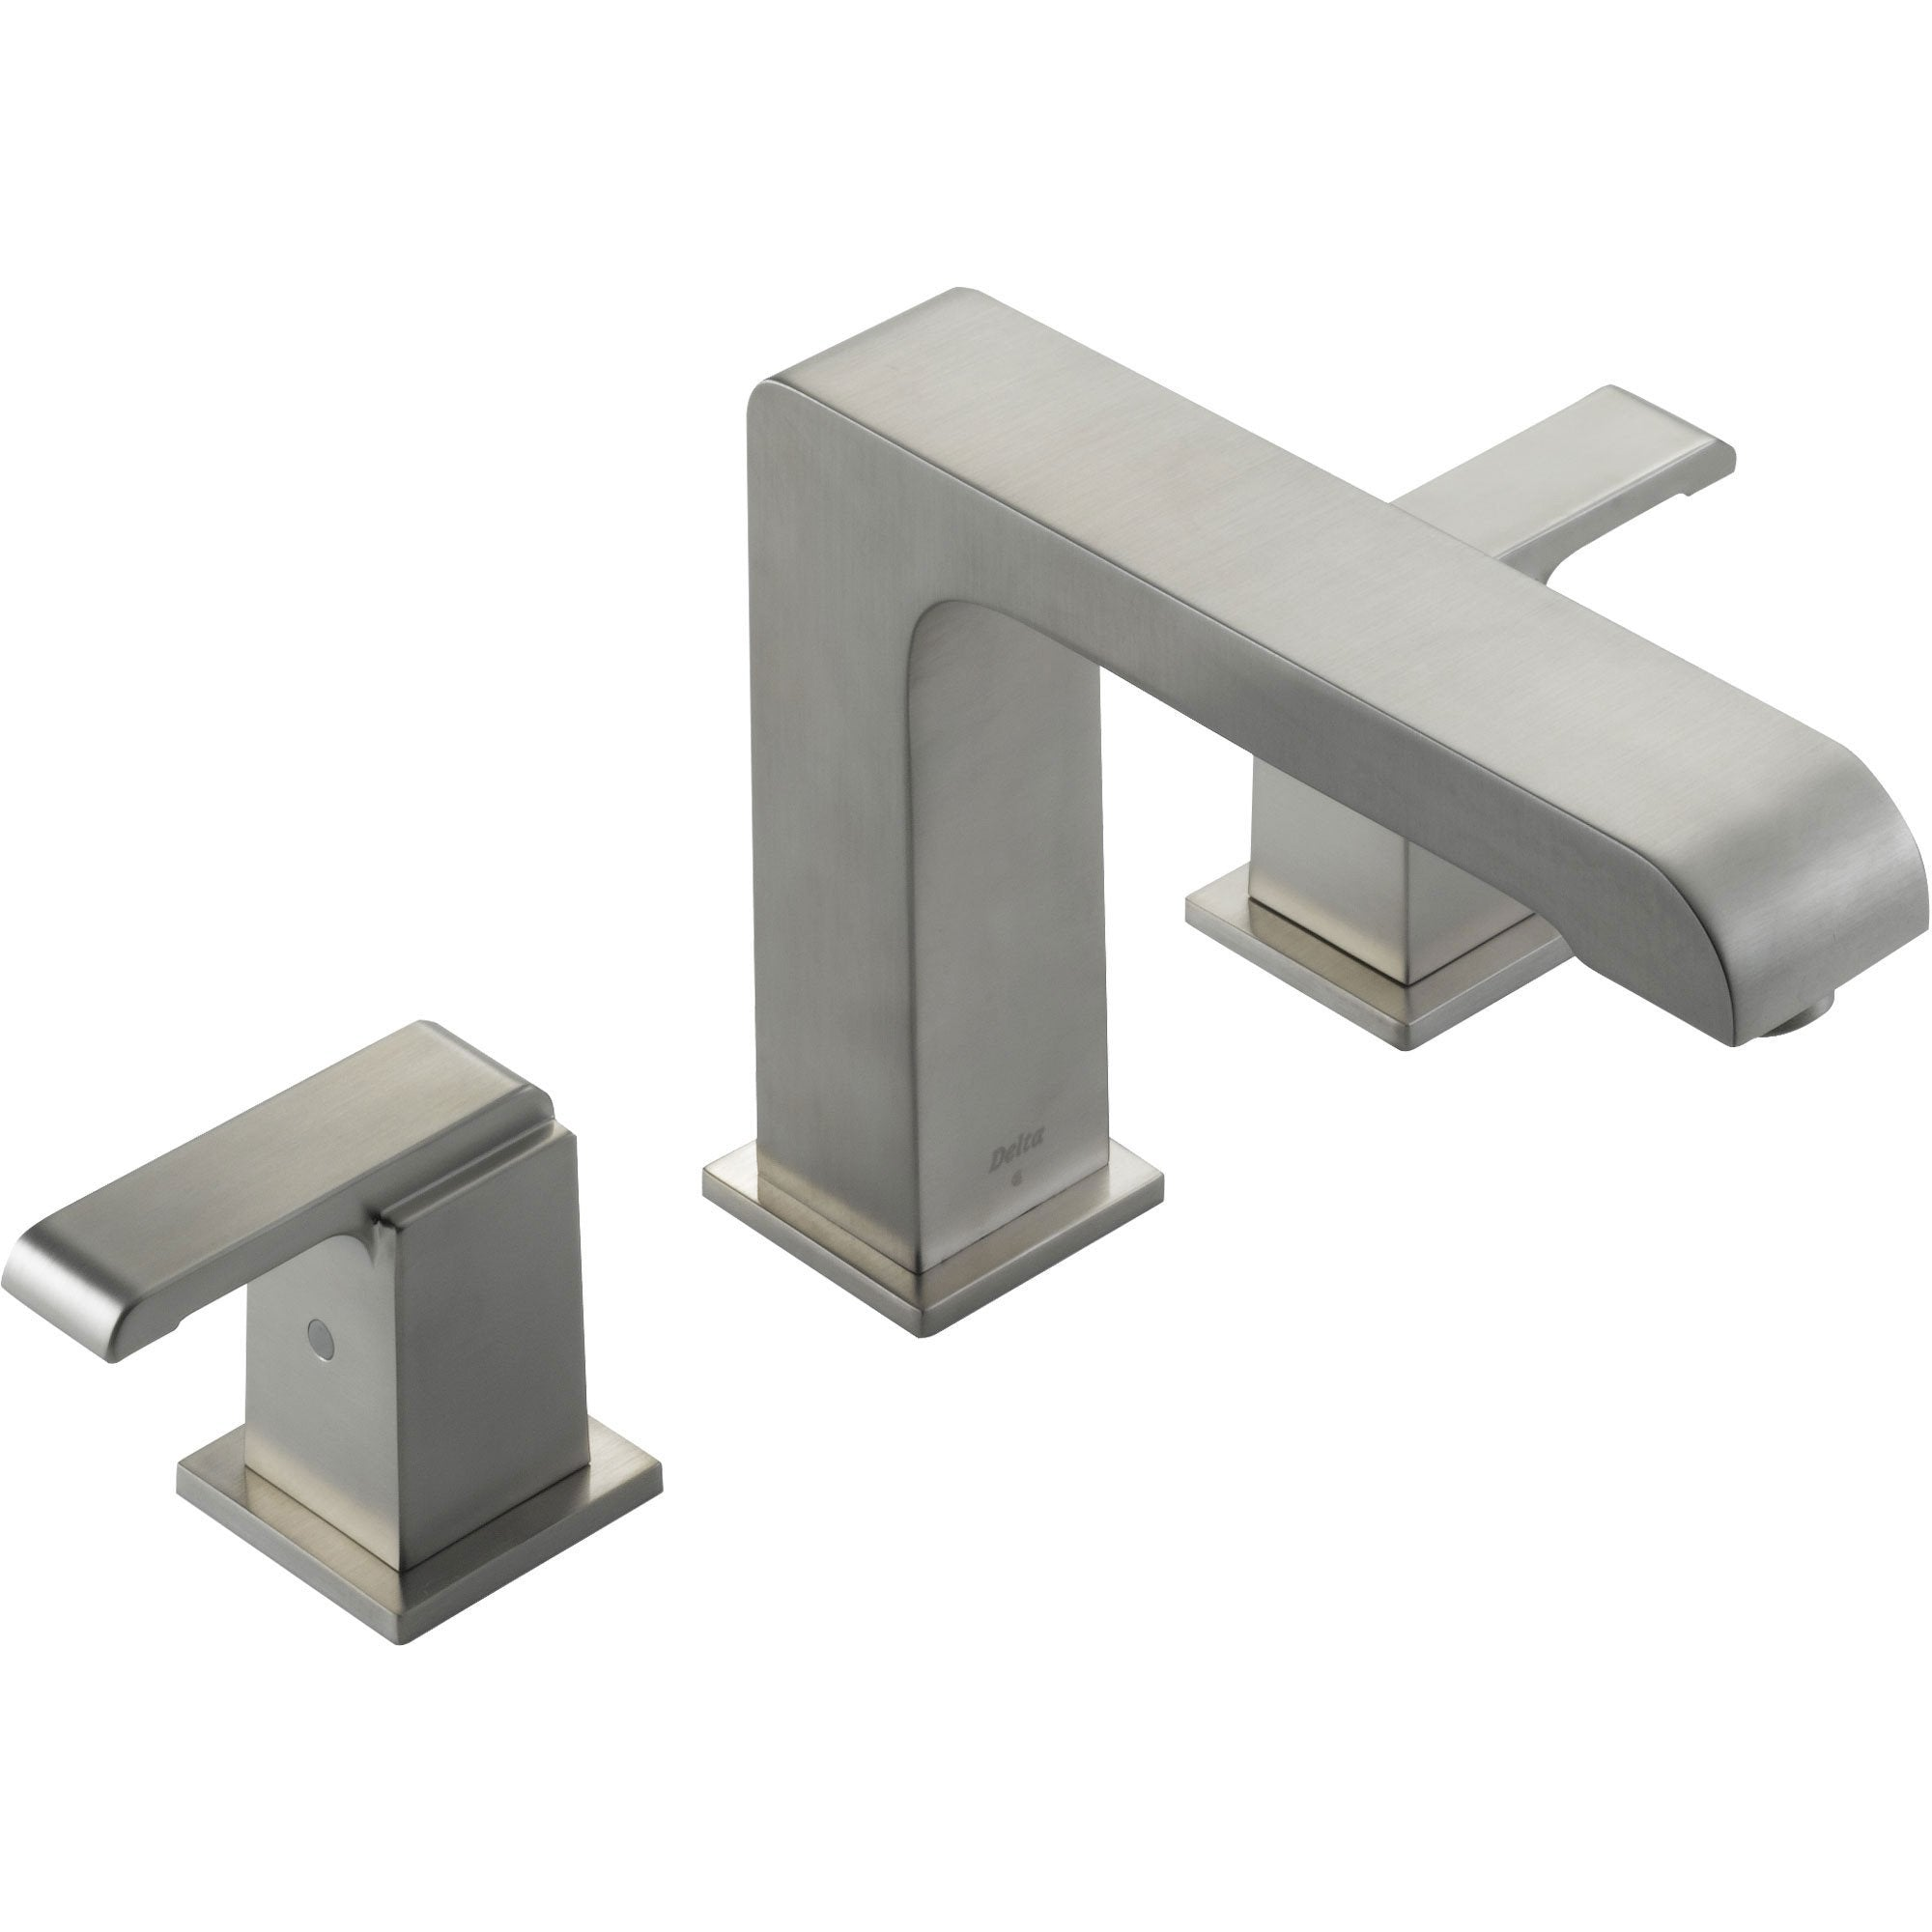 Delta Arzo Modern Stainless Steel Finish Roman Tub Faucet with Valve D918V